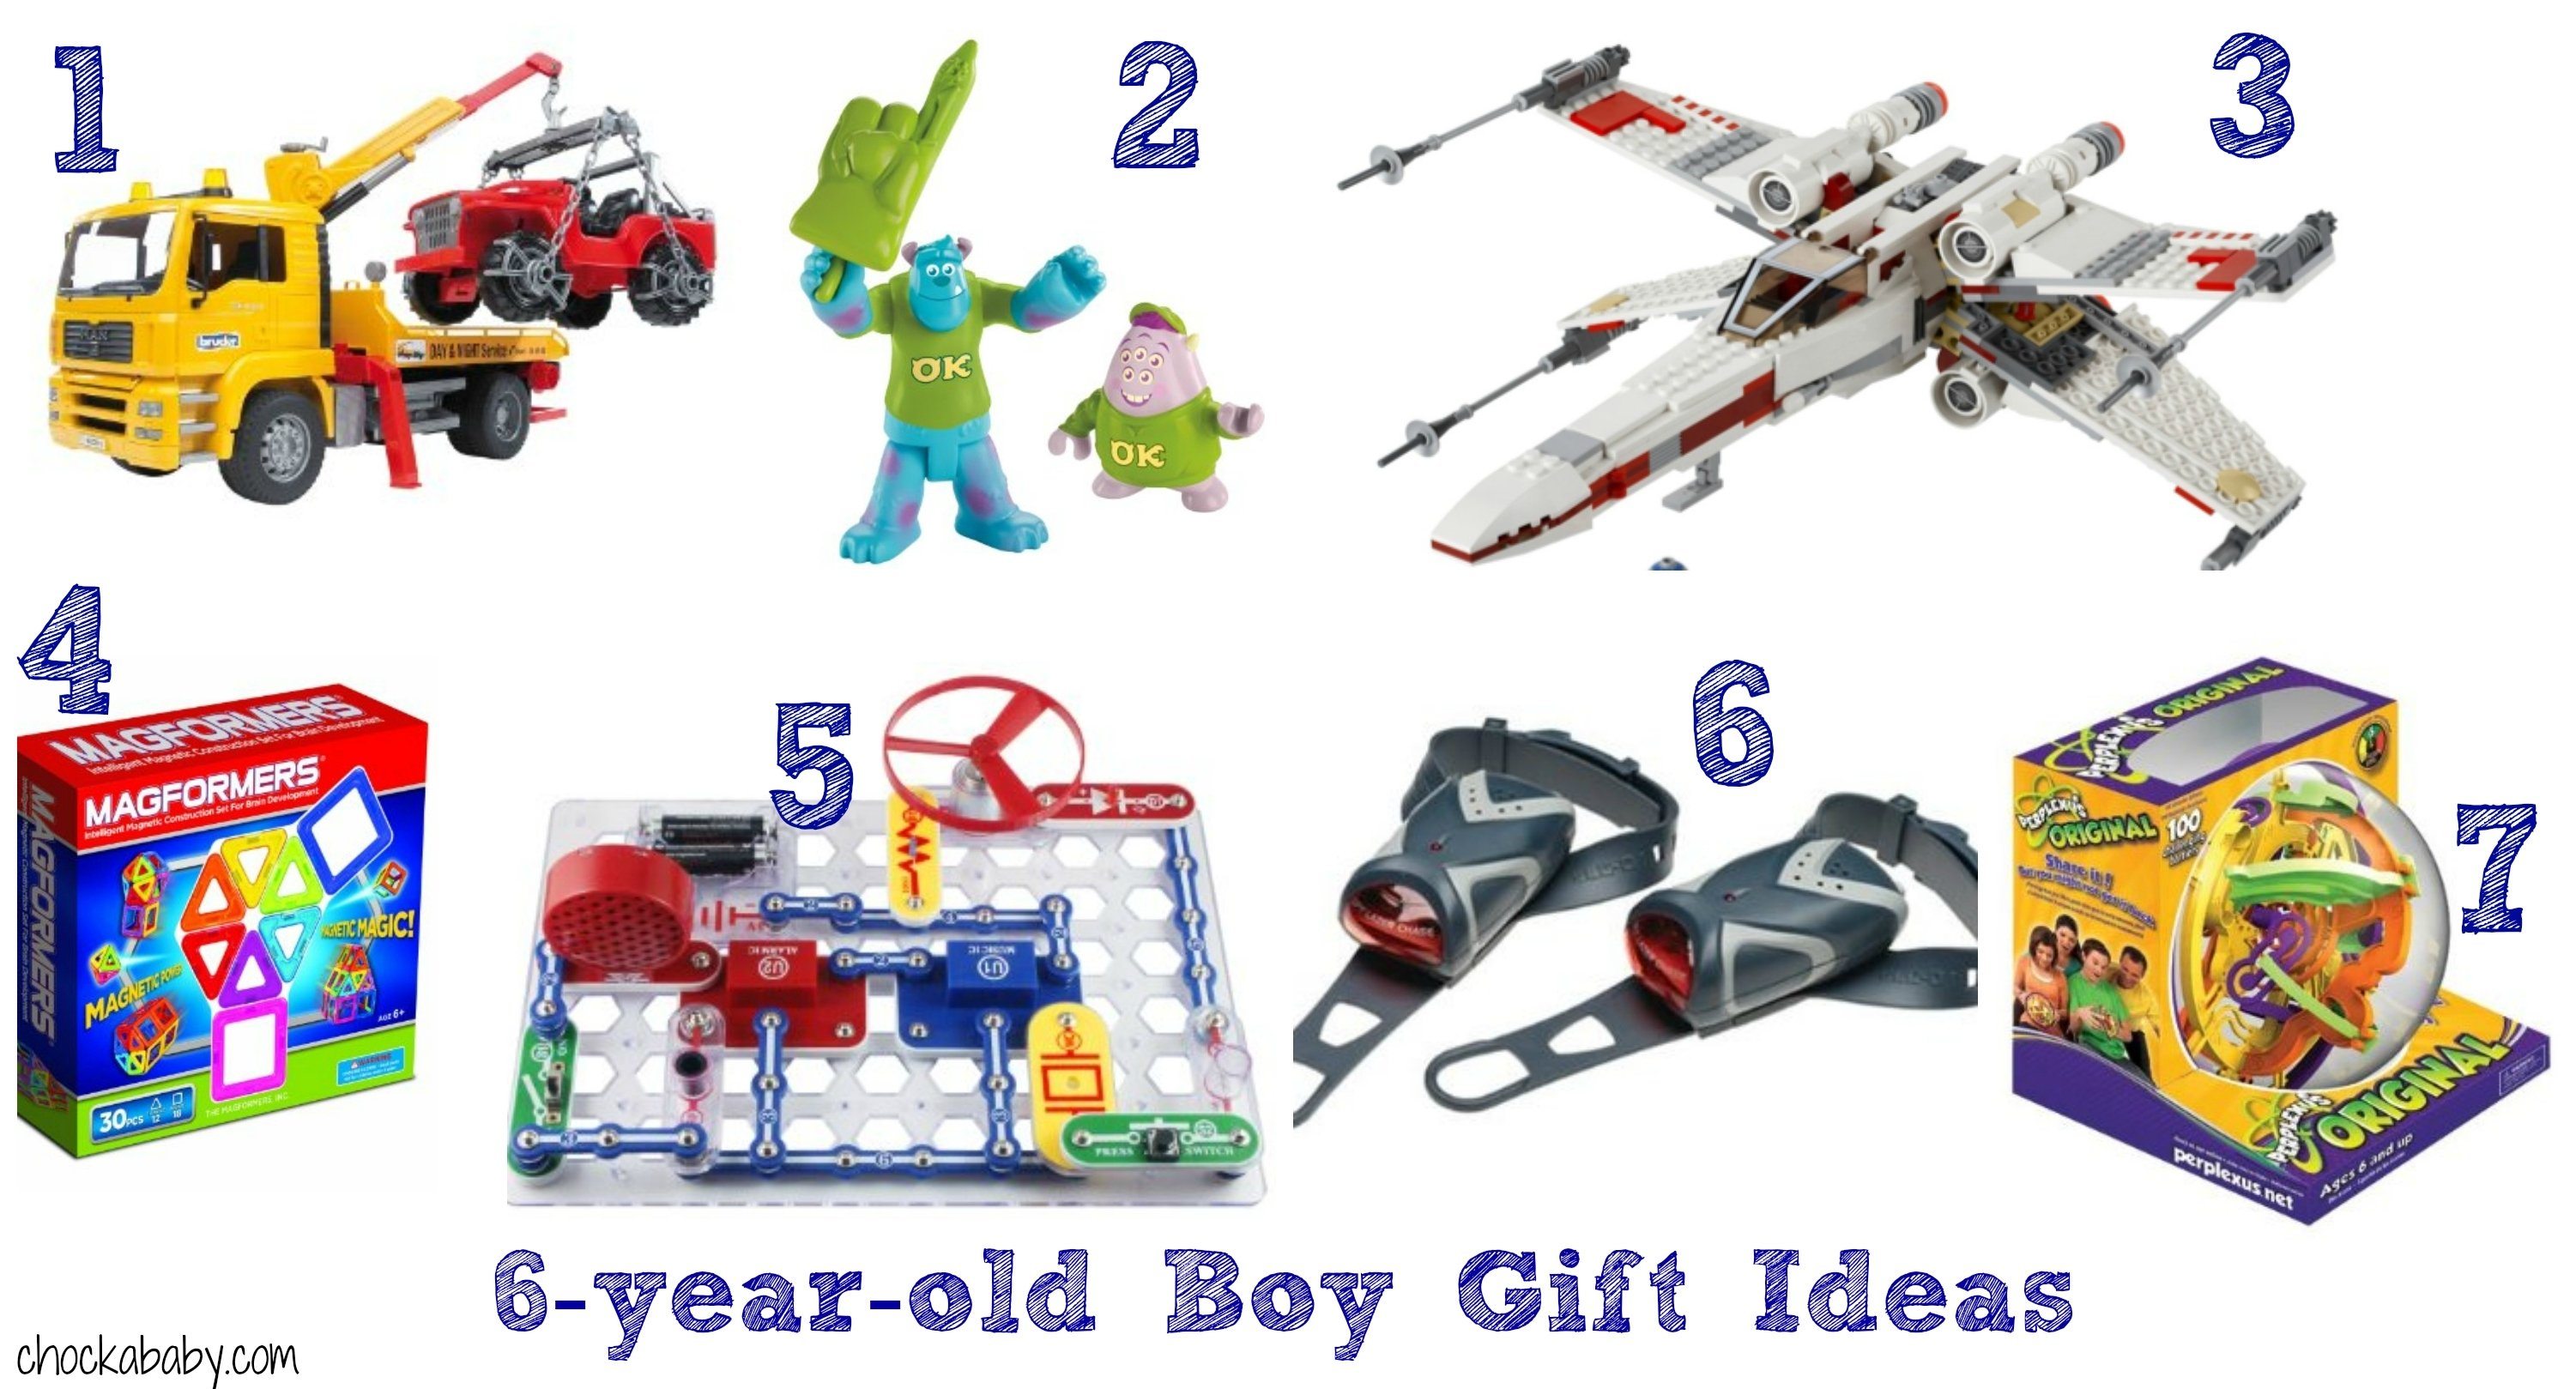 10 Unique Christmas Gift Ideas For 14 Year Old Boys